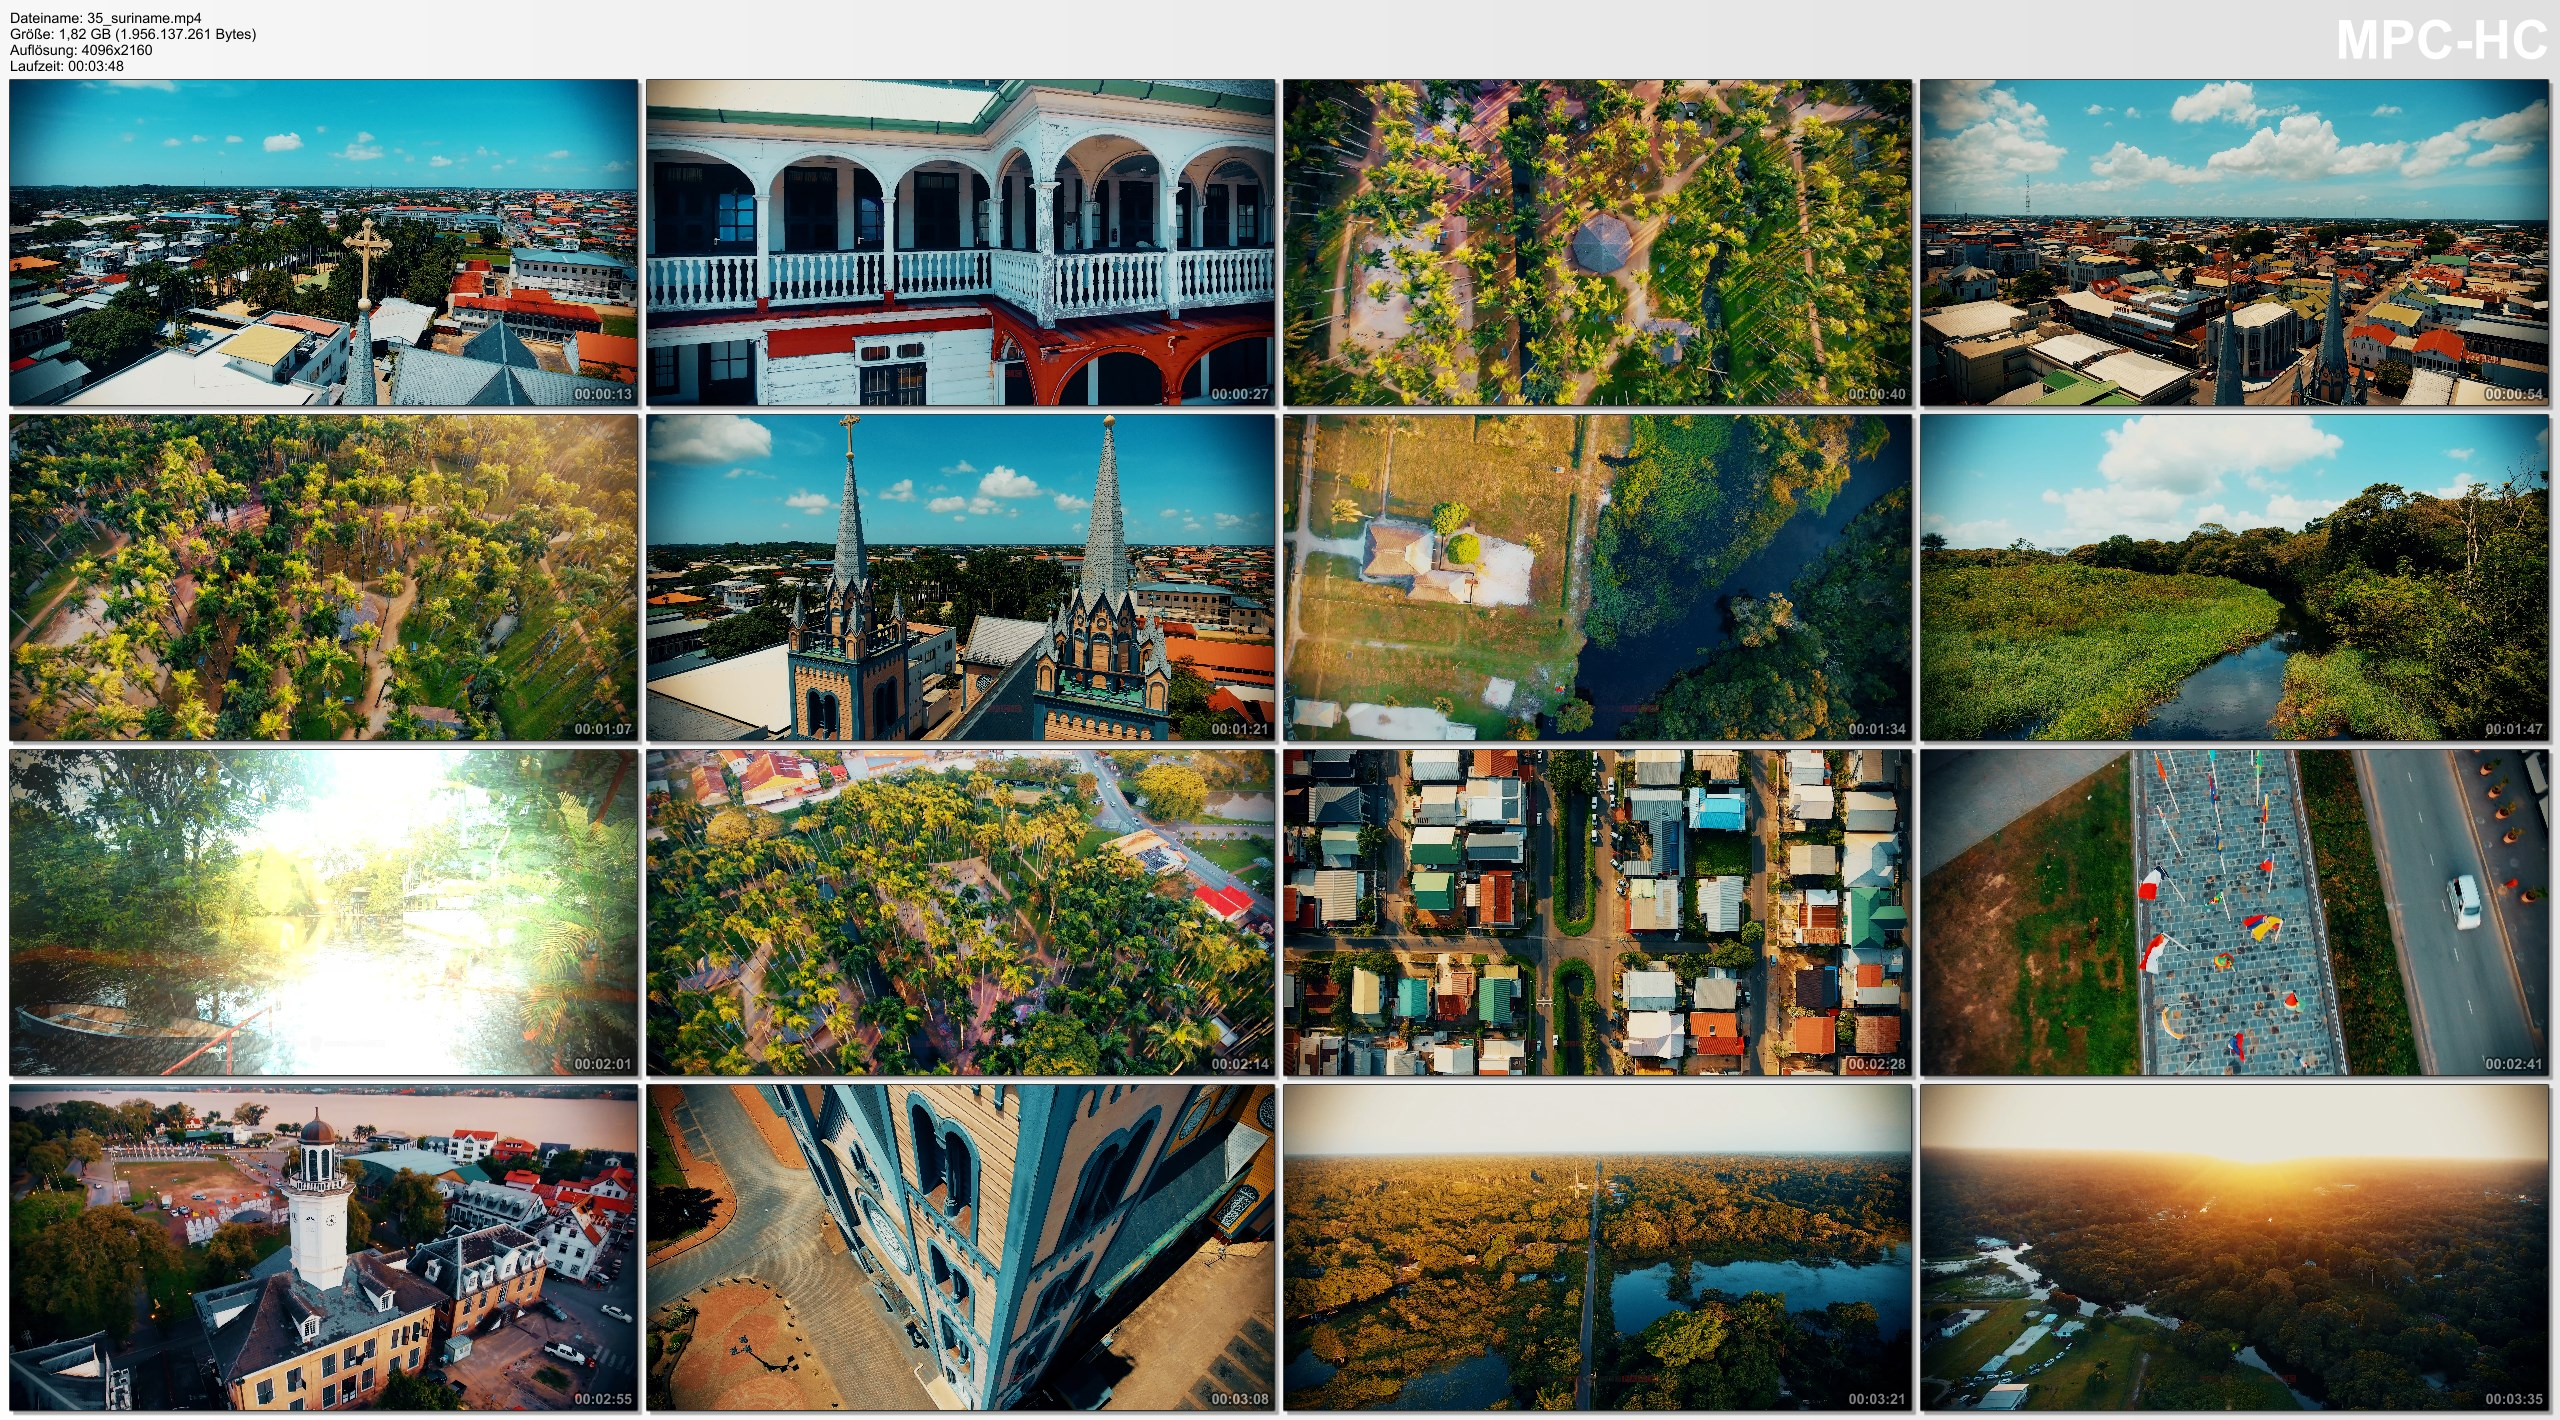 Drone Pictures from Video 4K Drone Footage PARAMARIBO (Suriname) [DJI Phantom 4]